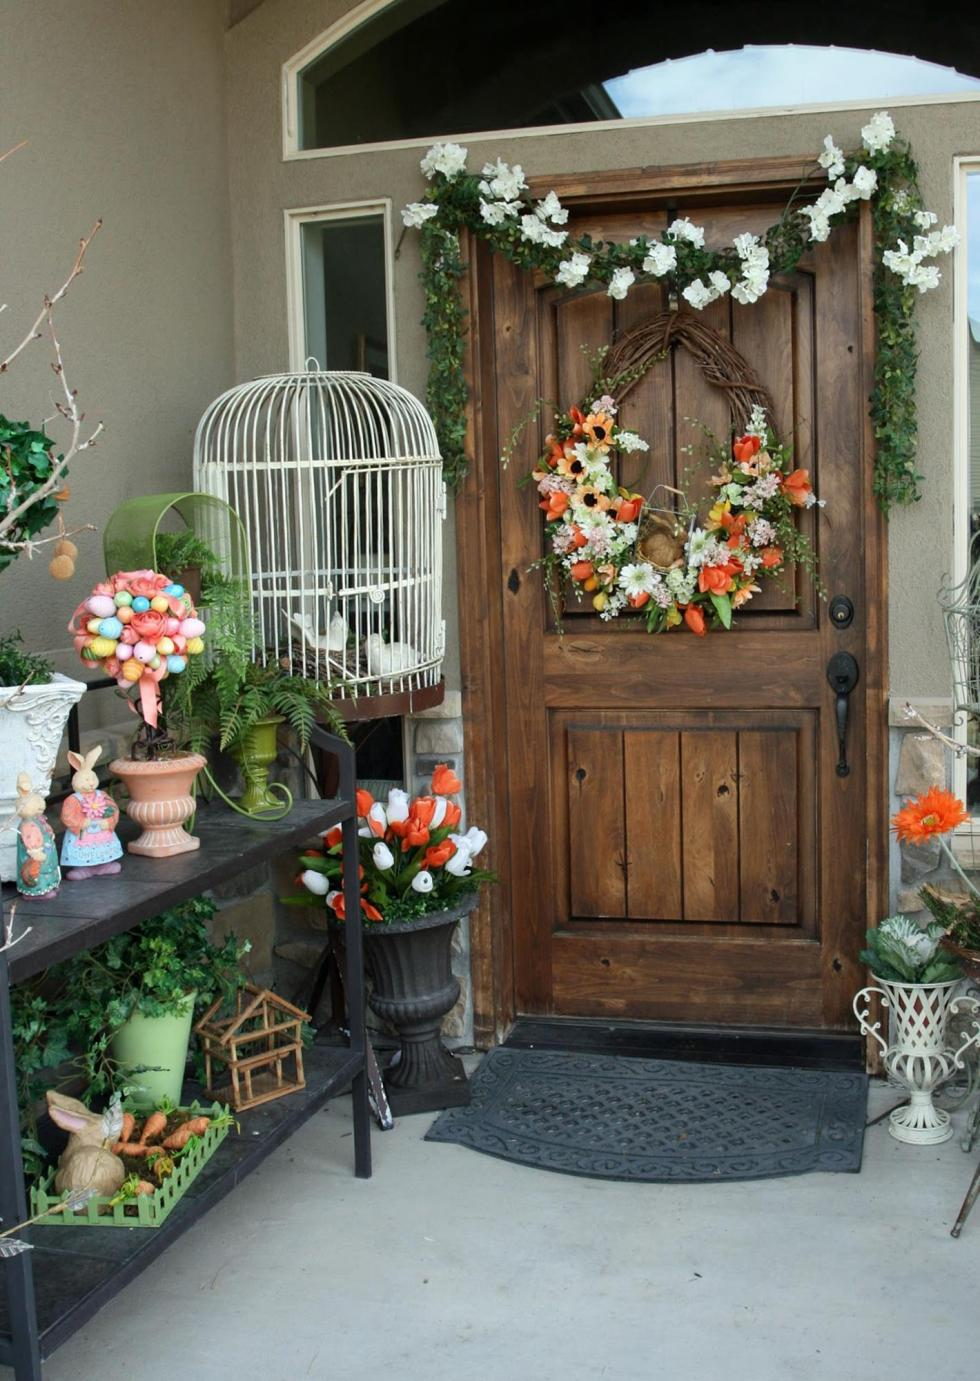 Spring Garden Decorating Ideas for Front Porch 19